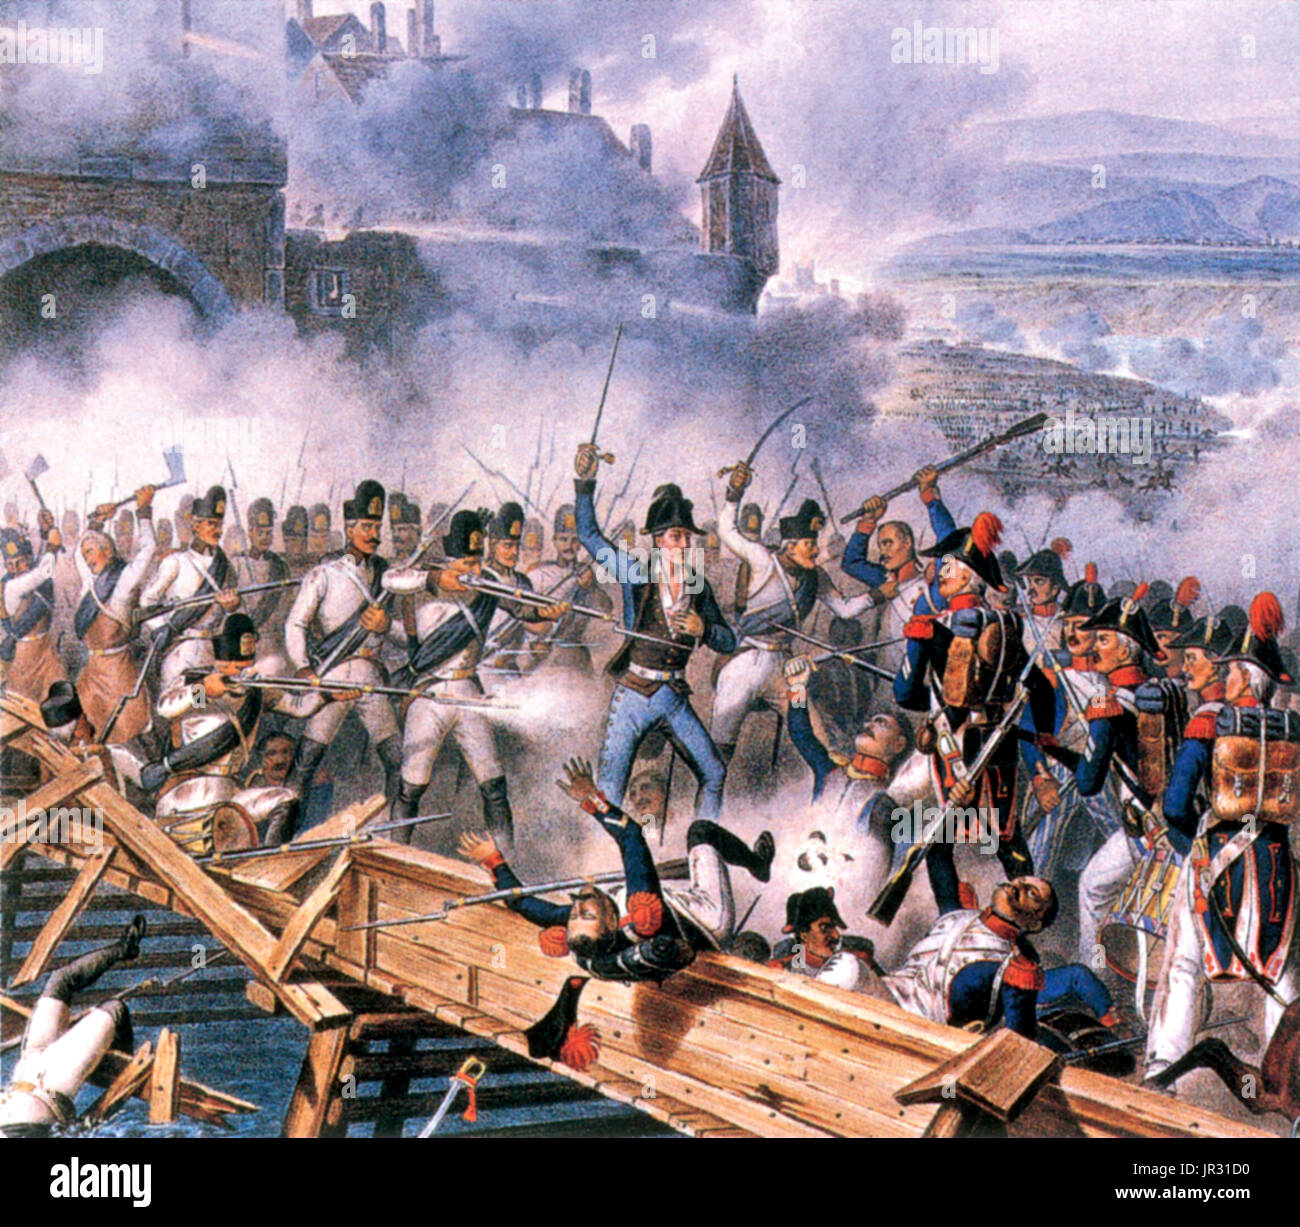 First Marshal Of The Empire High Resolution Stock Photography And Images Alamy